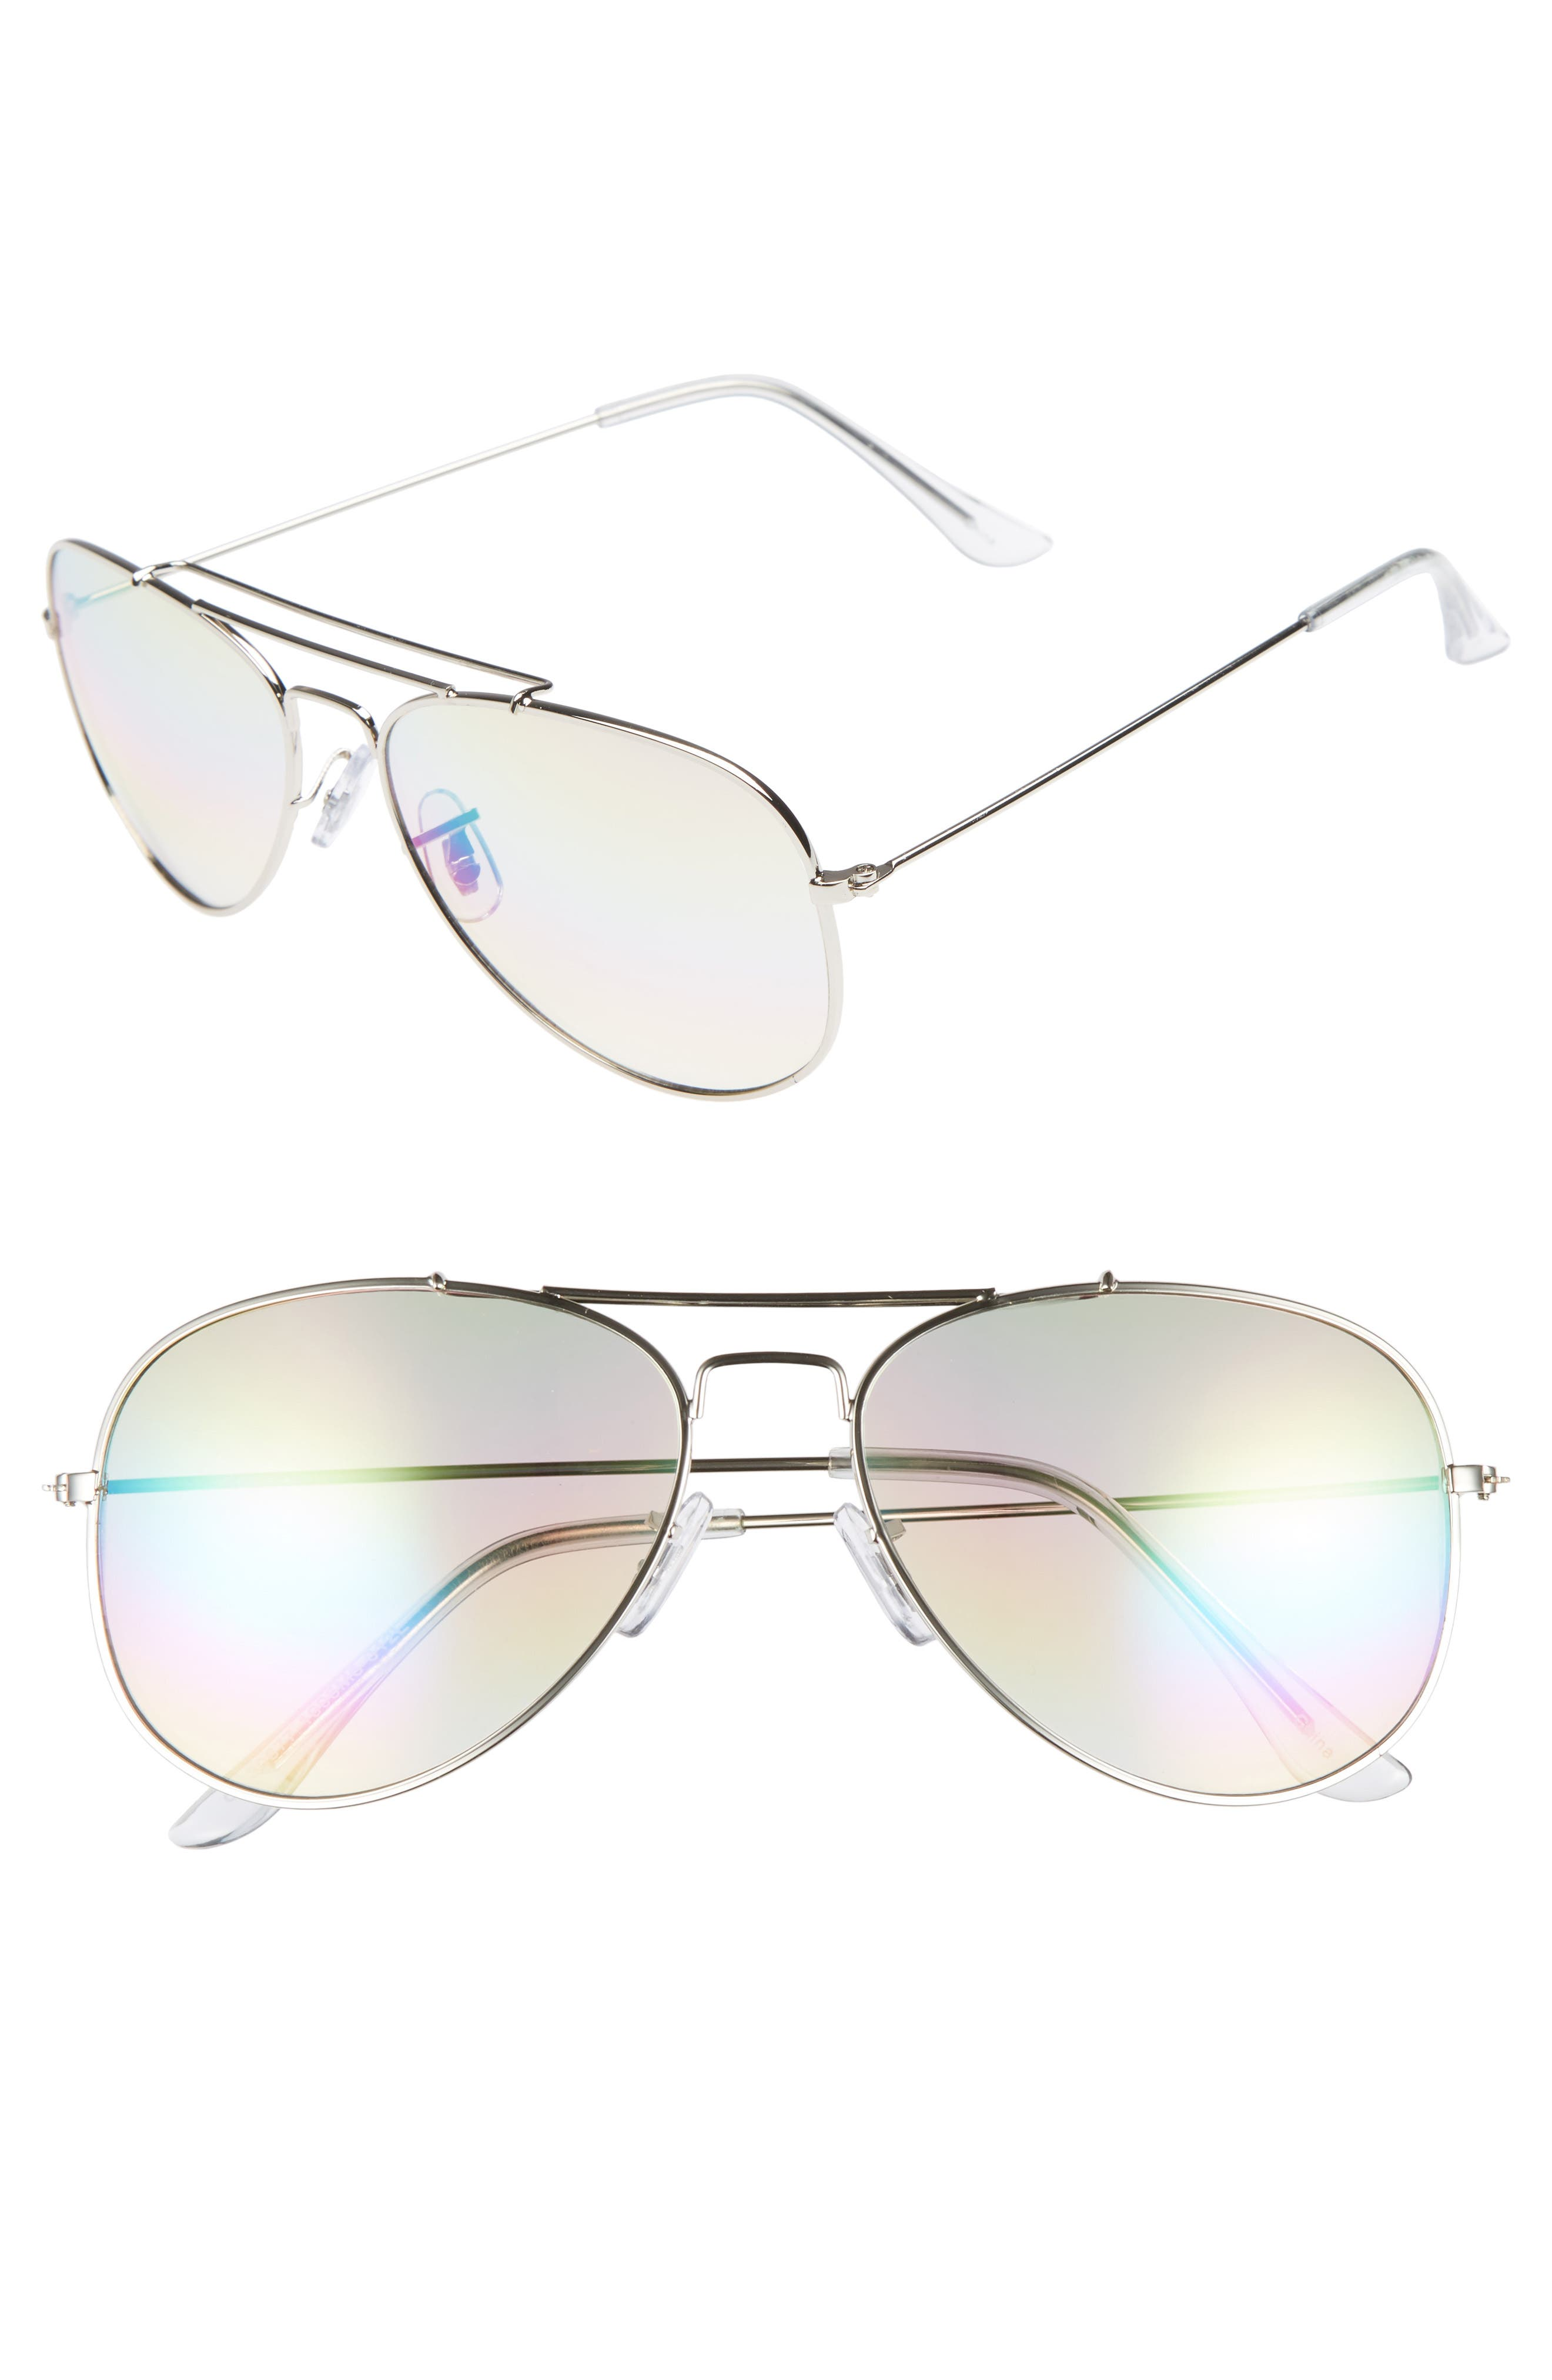 Rainbow Aviator Sunglasses,                             Main thumbnail 1, color,                             Silver/ Multi